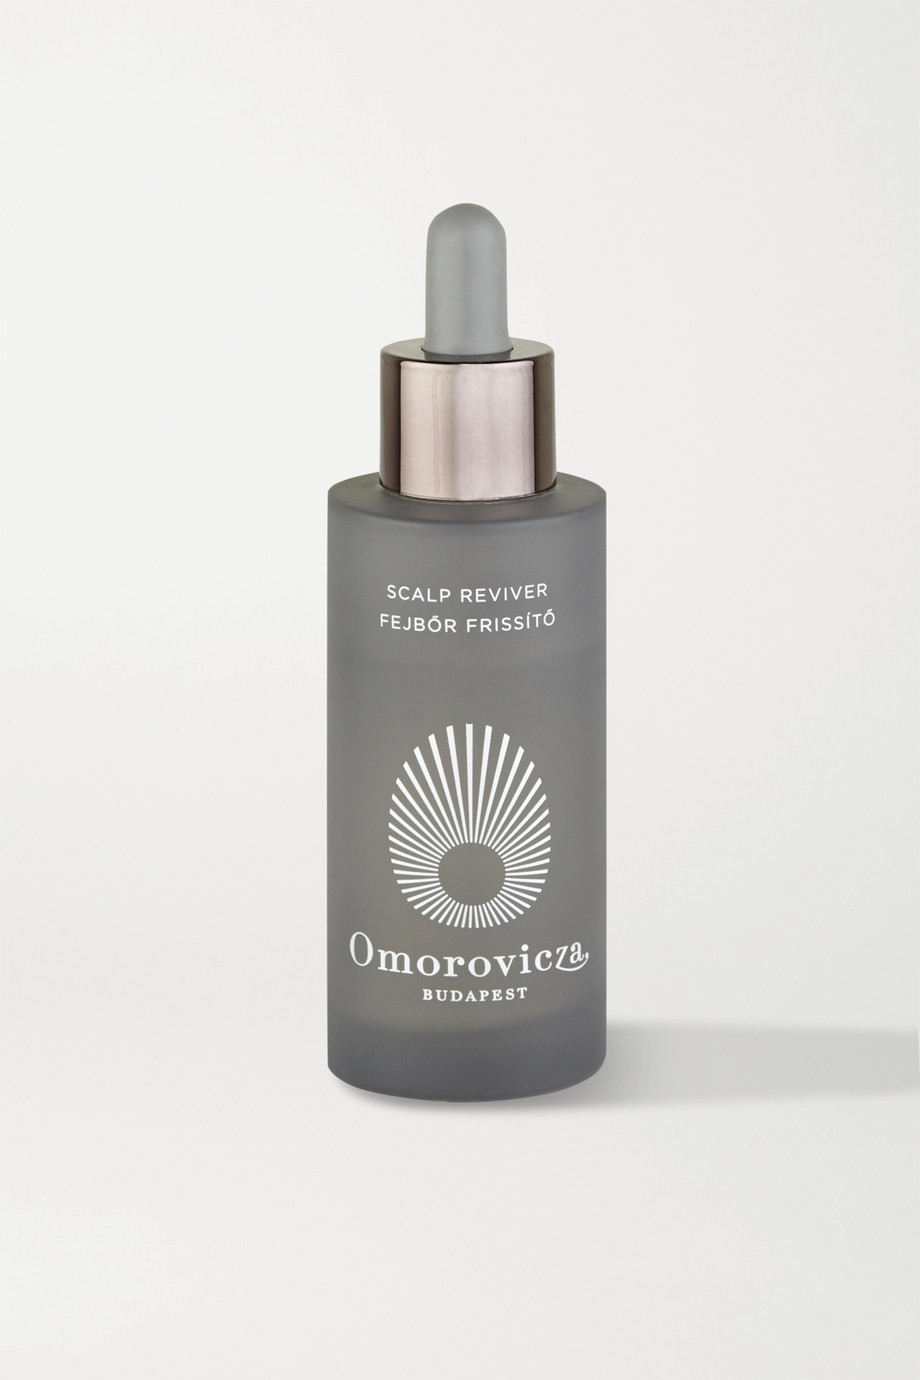 OMOROVICZA Scalp Reviver, 50ml